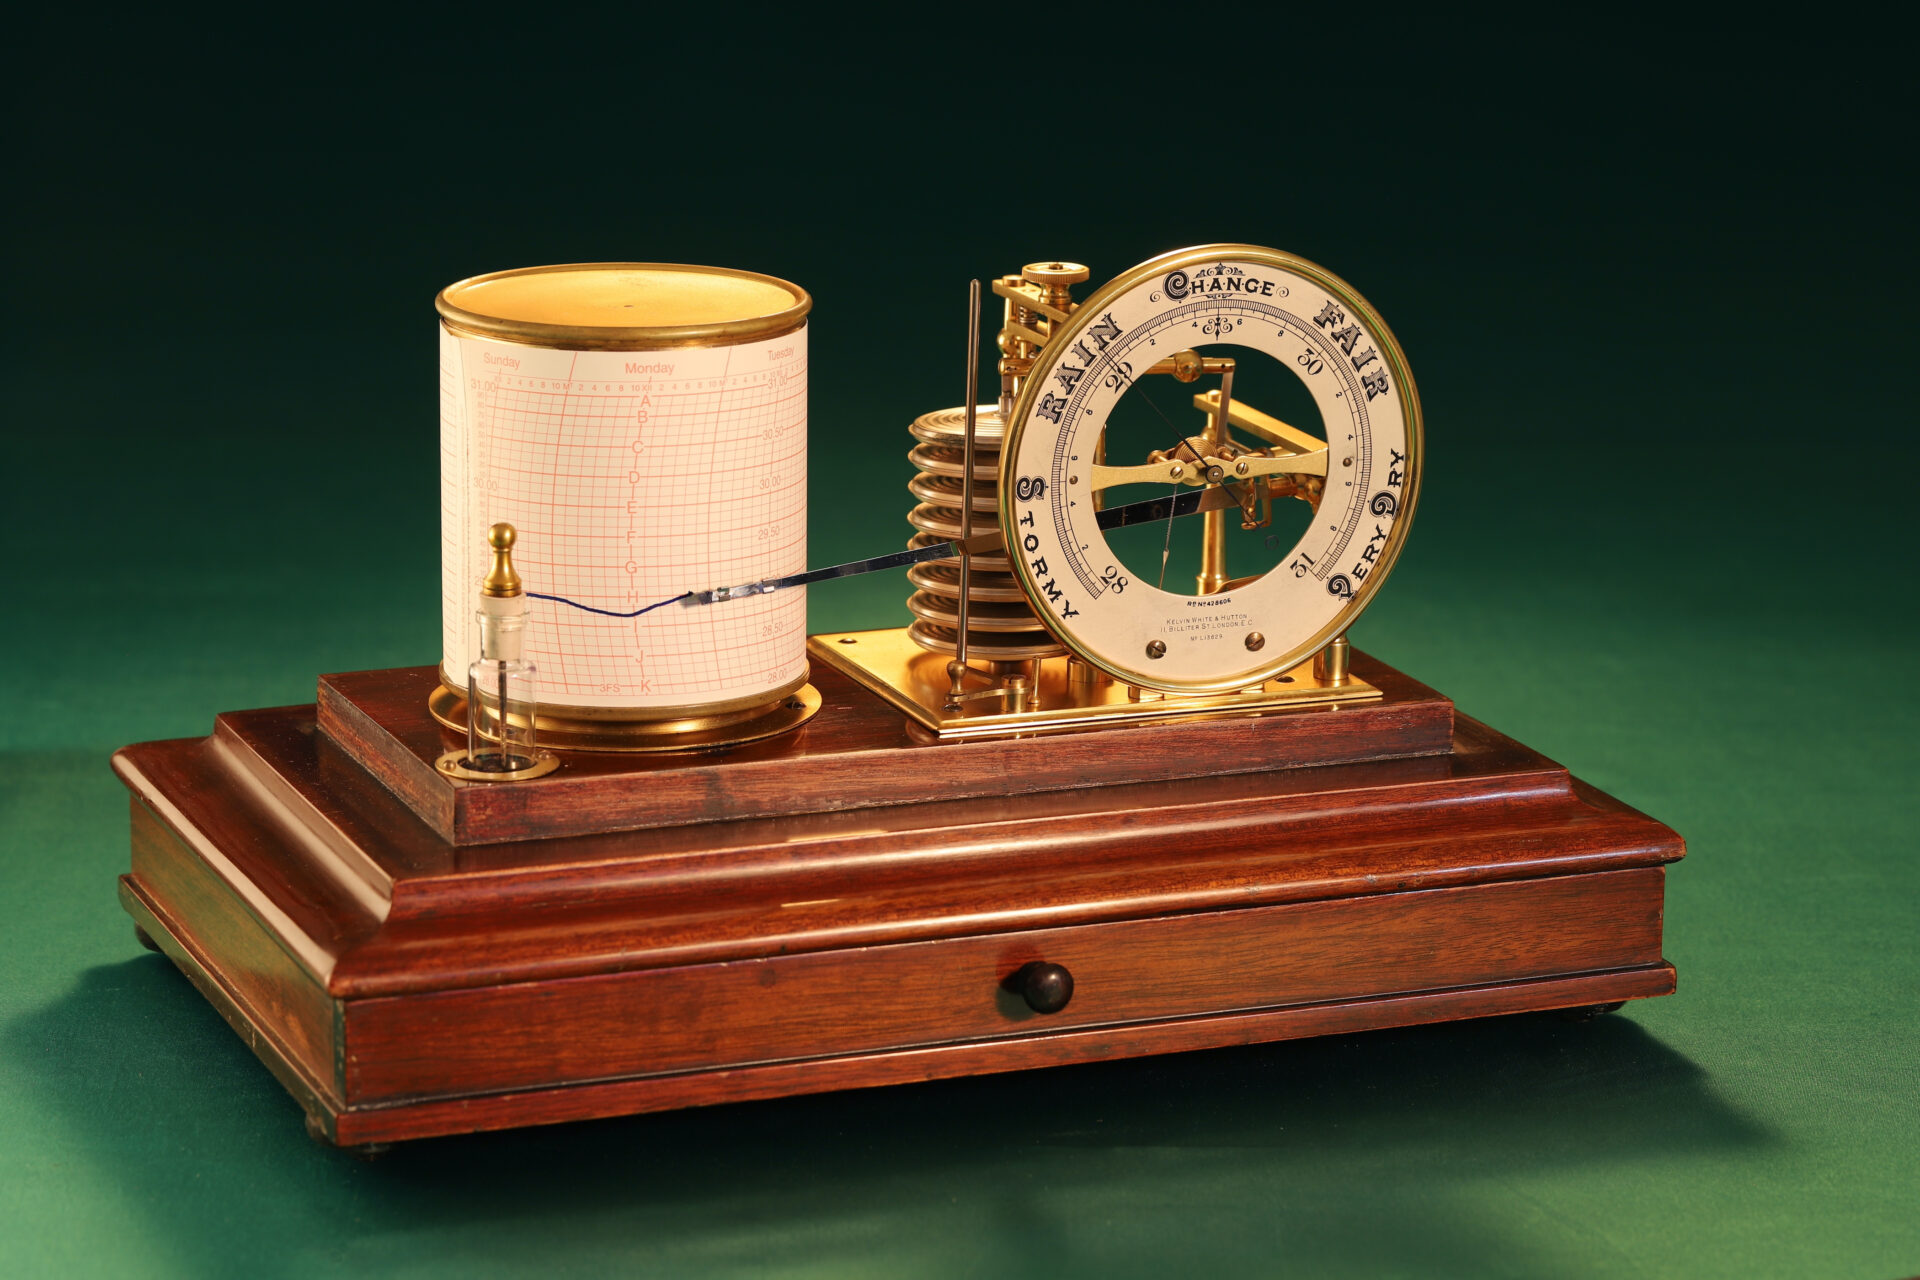 Image of Short & Mason Barograph No L13629 c1930 taken from lefthand side with lid removed